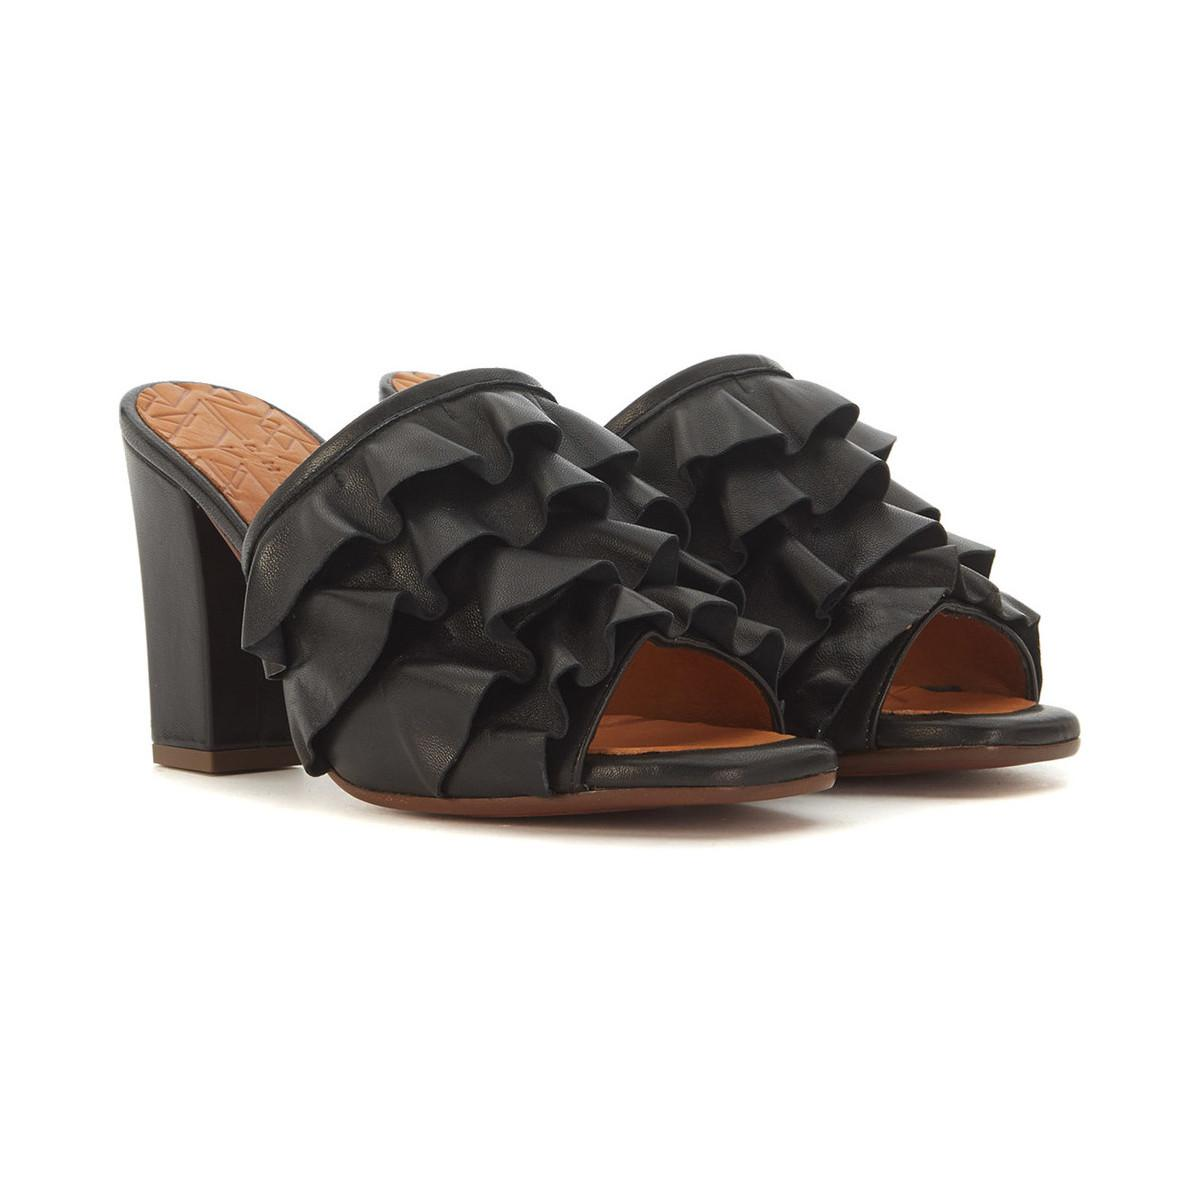 Chie Mihara Aikiki Black Leather Sabot From China Low Shipping Fee Buy Cheap Latest Collections MwP1C